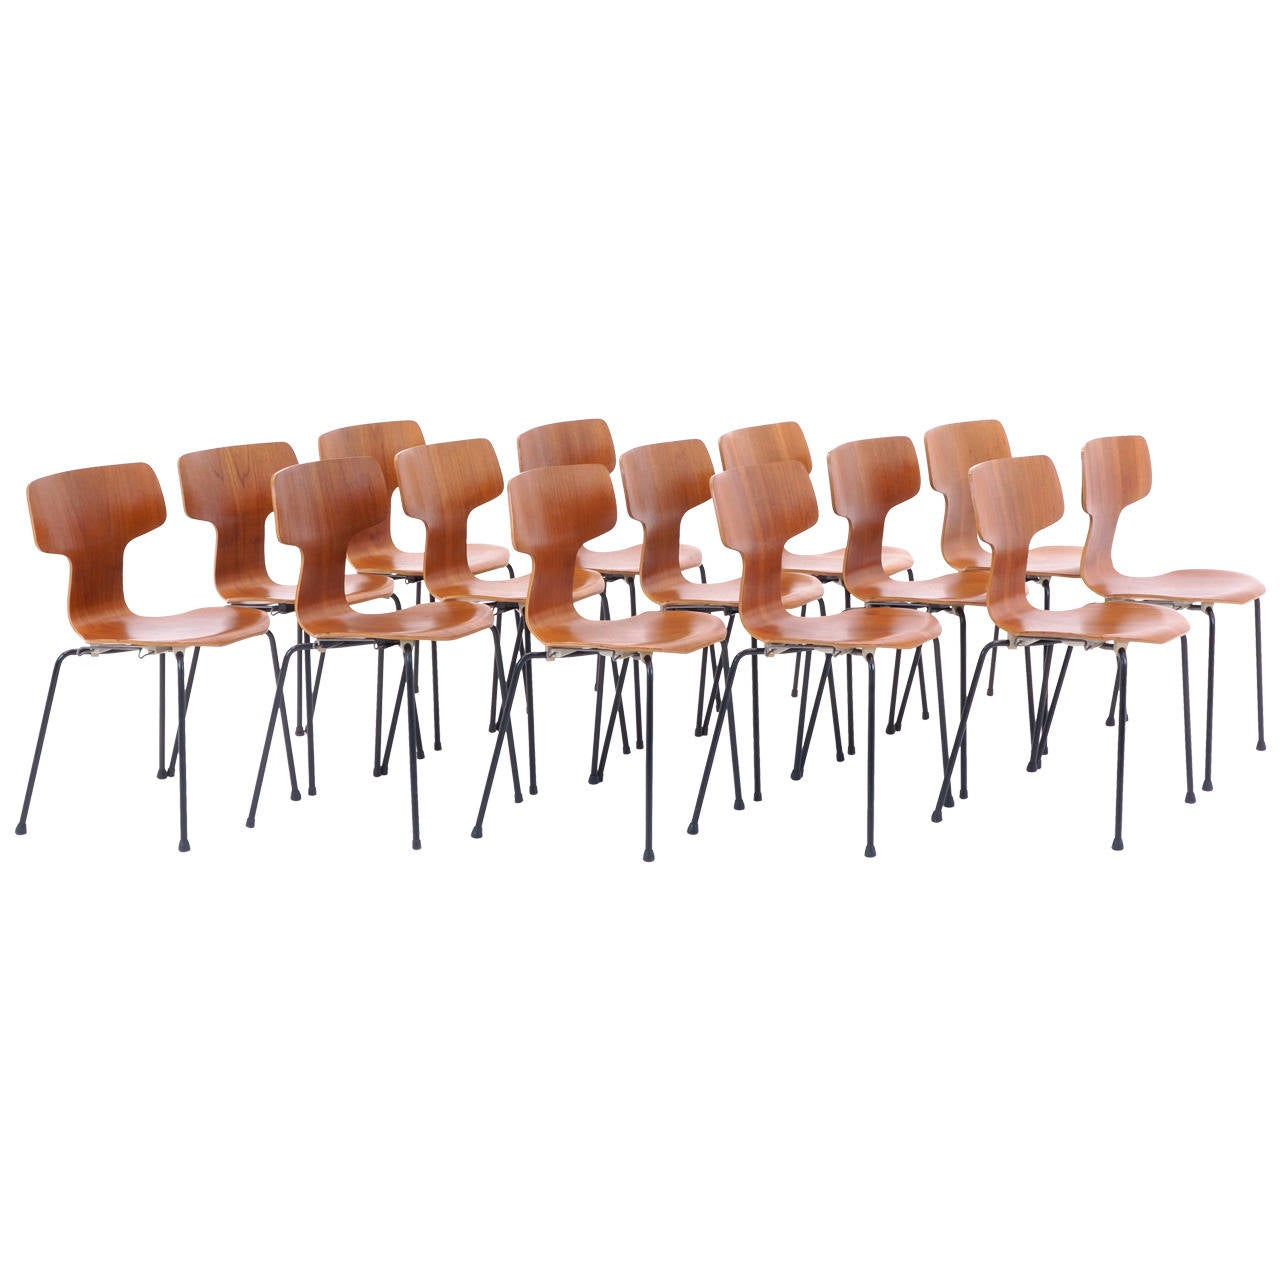 arne jacobsen teak 3103 stacking chairs set of 12 for sale at 1stdibs